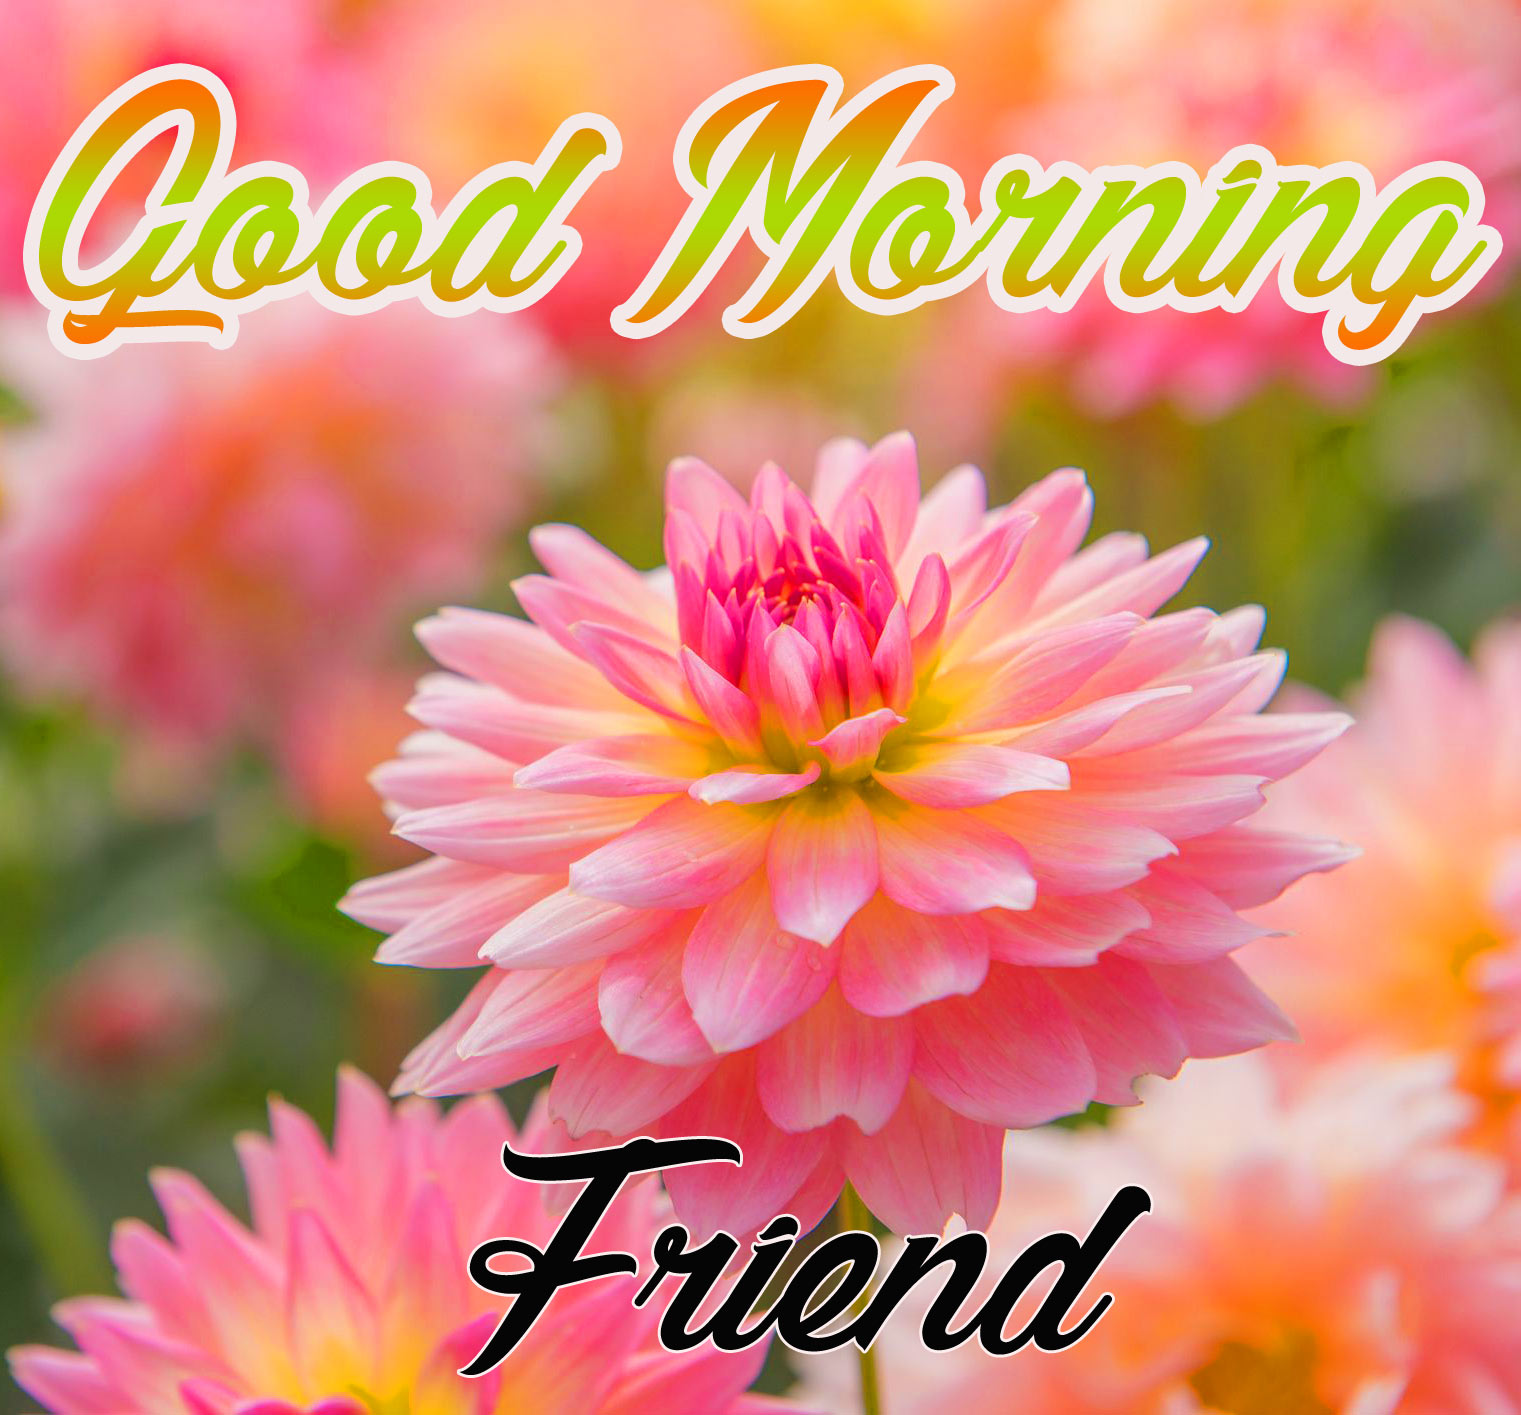 139 Latest Gm Pic Hd Free Download For Mobile Good Morning